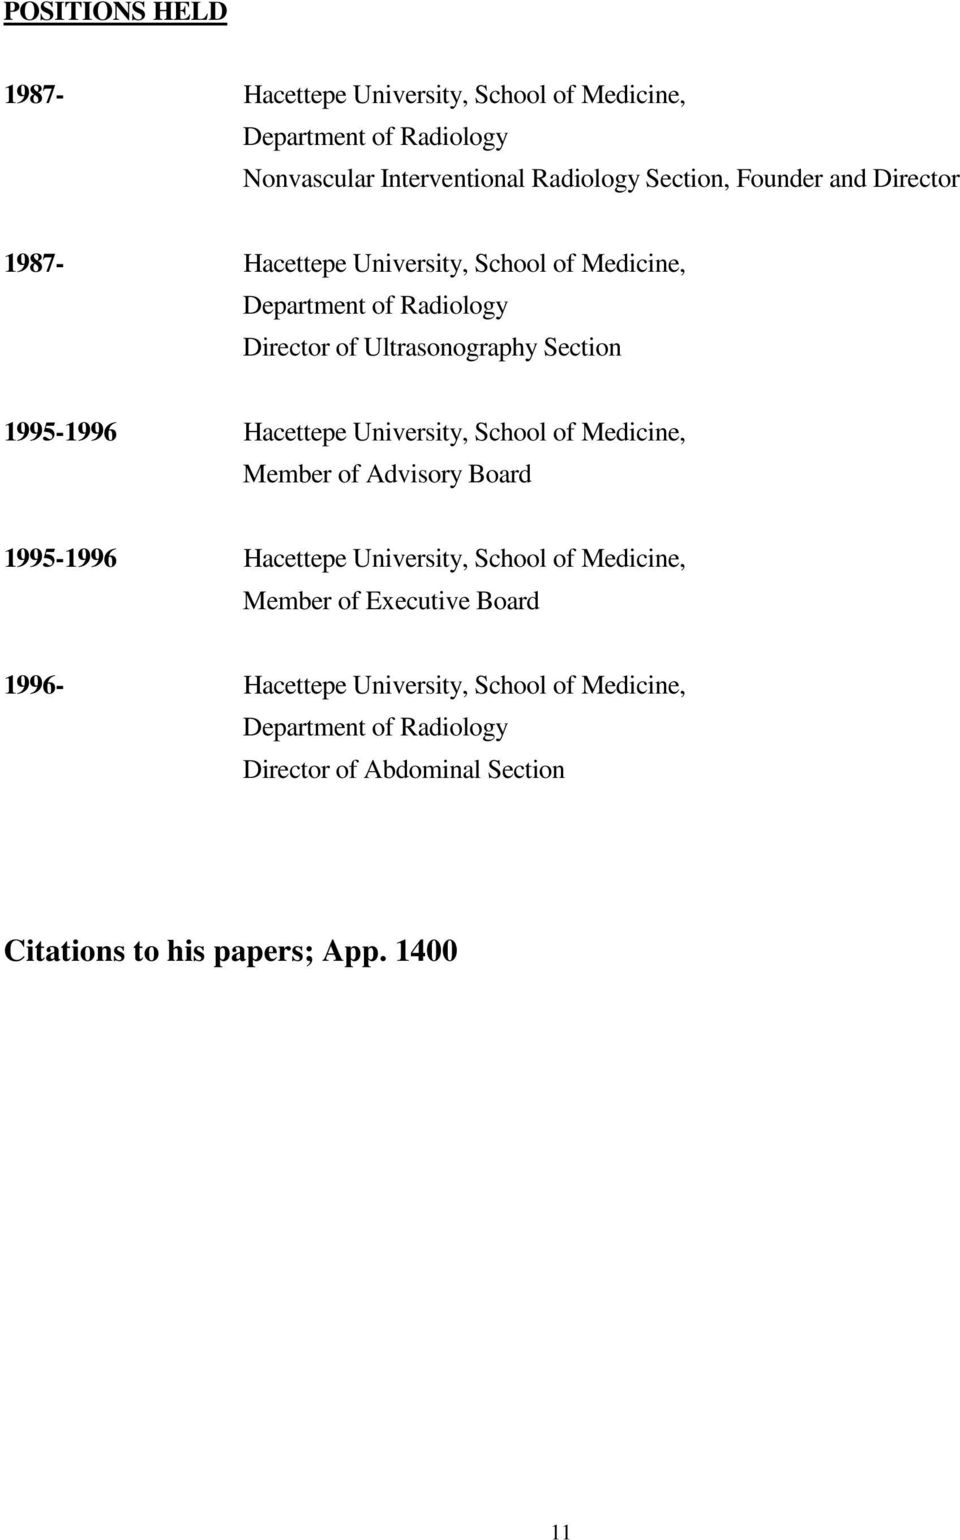 Hacettepe University, School of Medicine, Member of Advisory Board 1995-1996 Hacettepe University, School of Medicine, Member of Executive